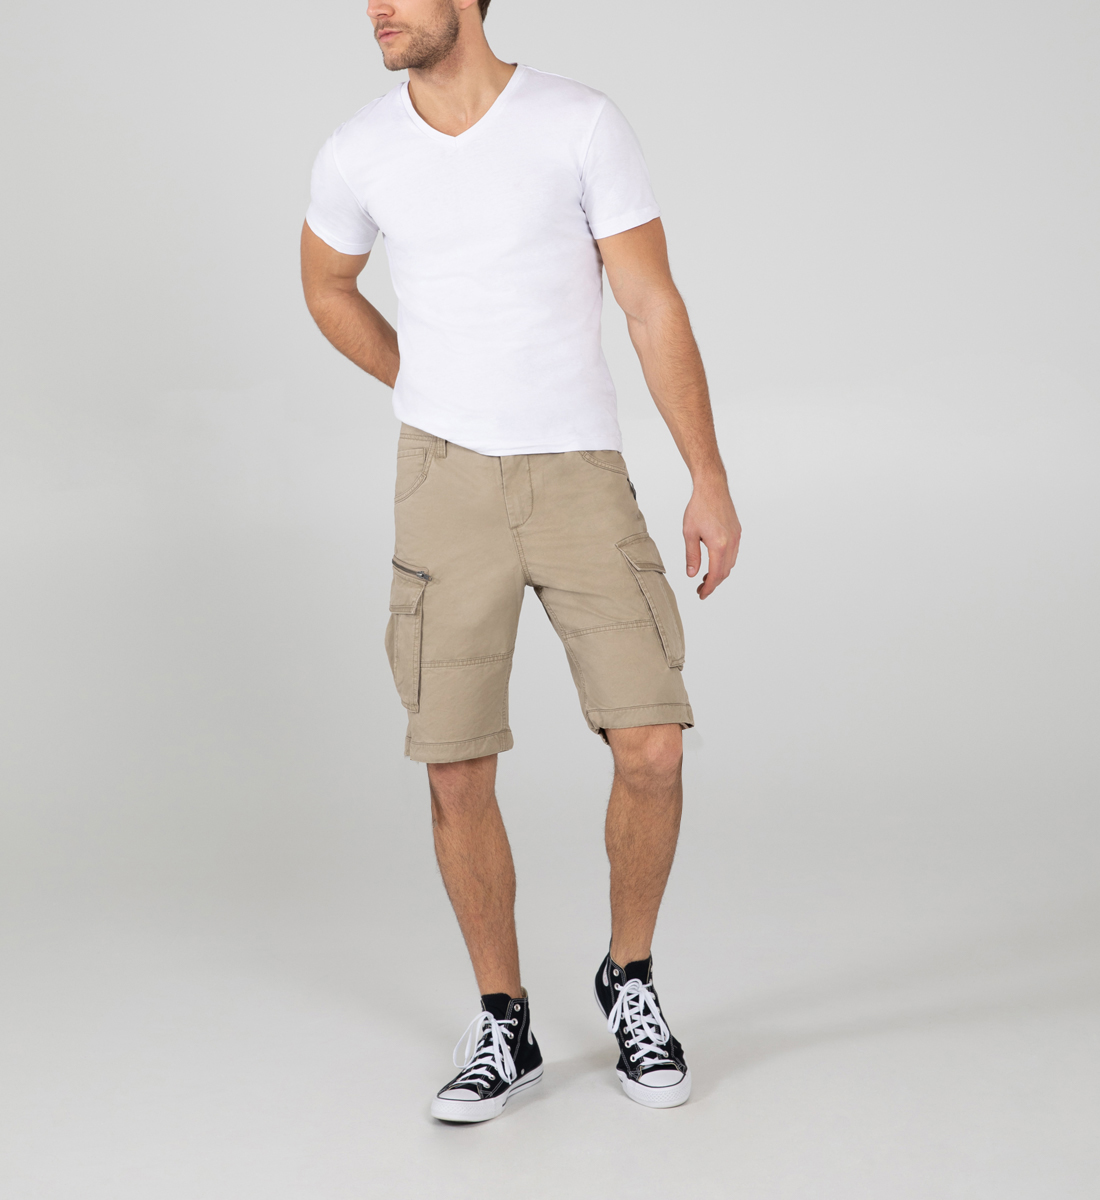 Silver Jeans Twill Cargo Shorts